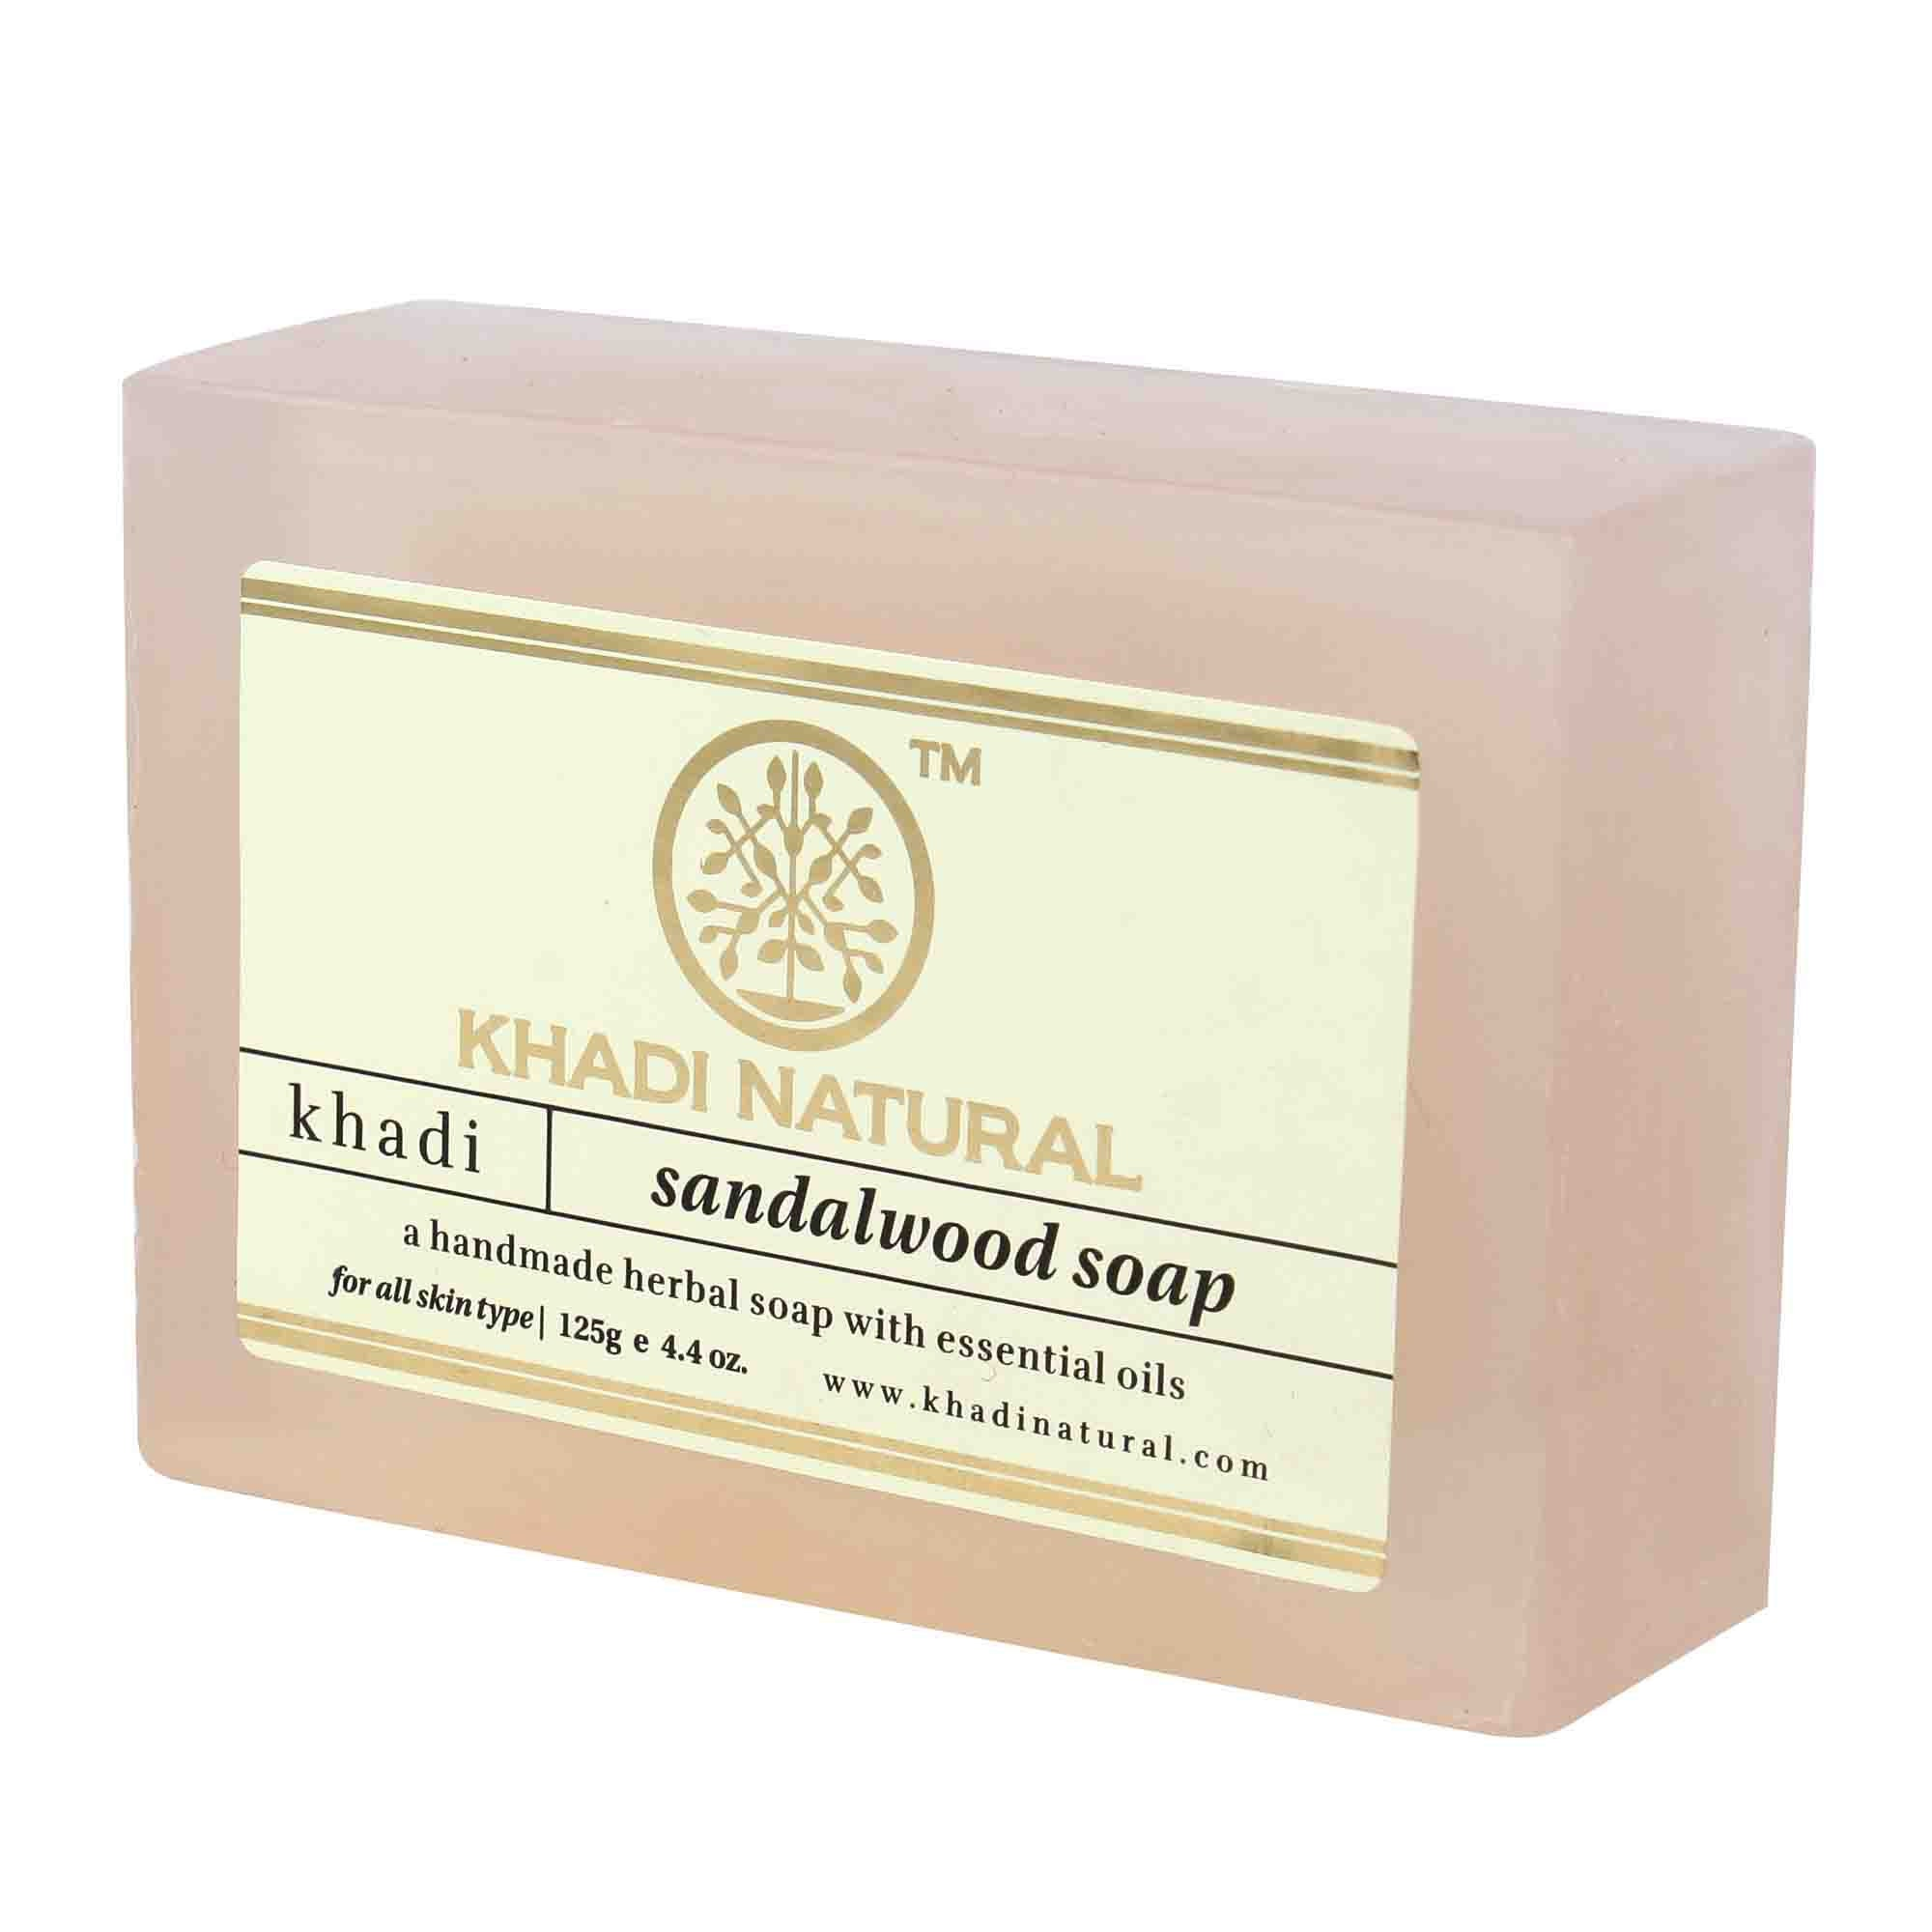 Khadi Natural Handmade Soap